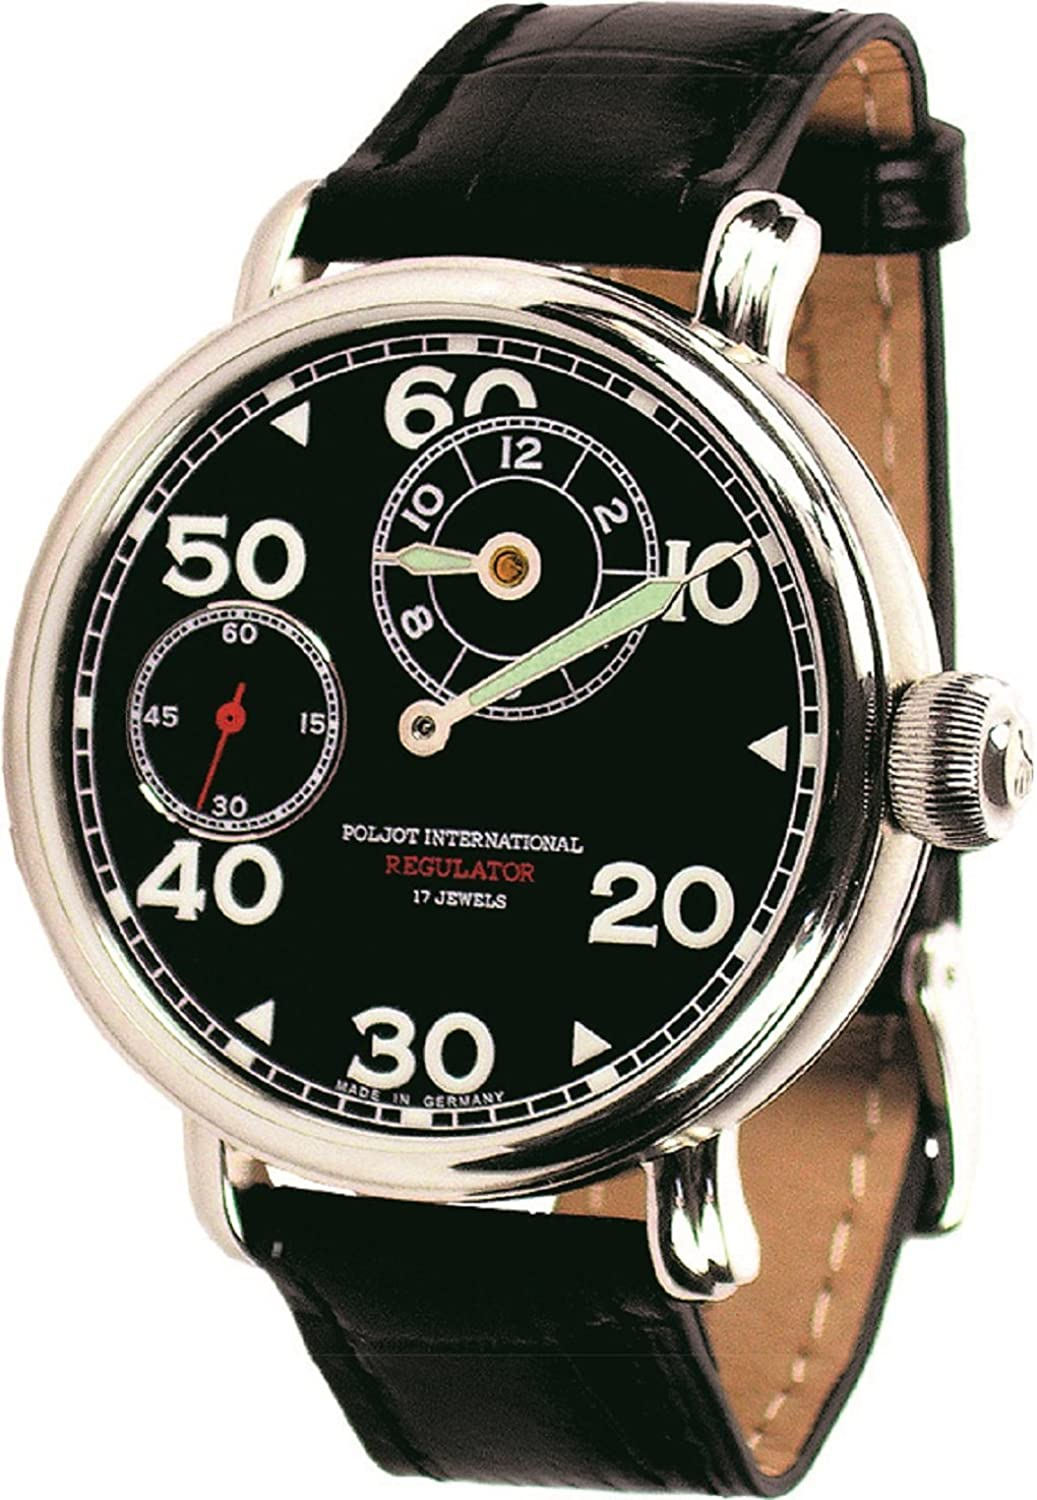 Regulator Handaufzug Herren-Armbanduhr mechanisch Lederband schwarz - POLJOT-International